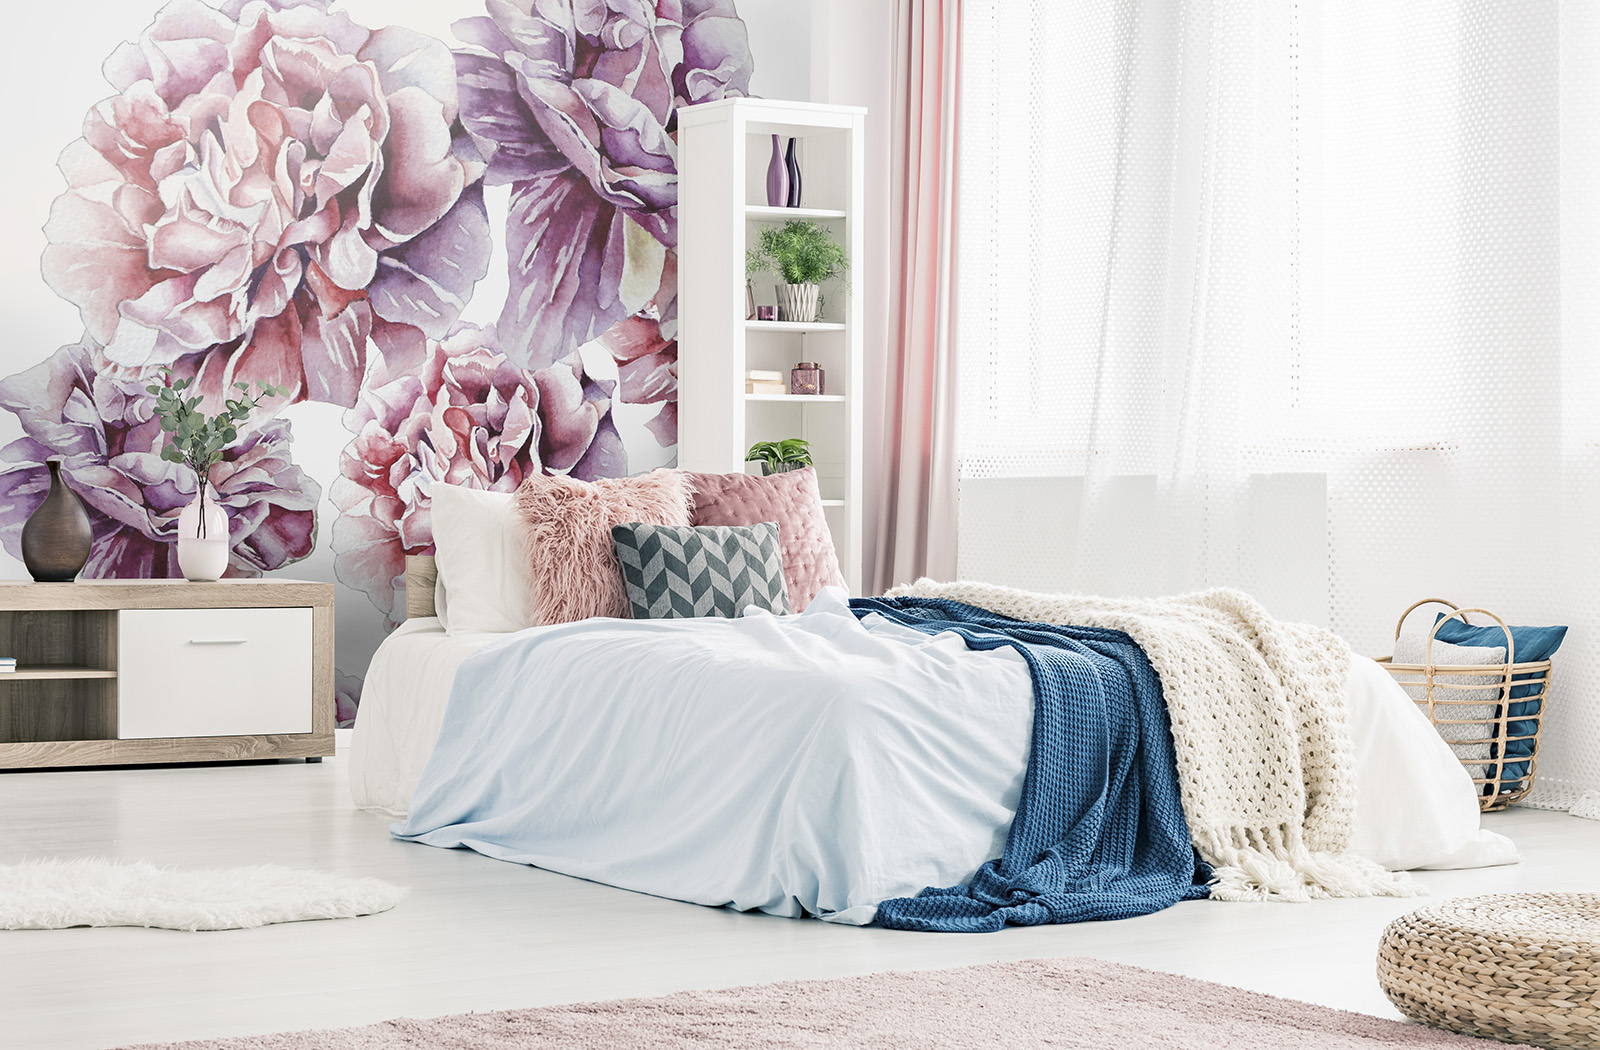 Pink pillows and blue blanket on bed in woman bedroom interior with plant on wooden cupboard